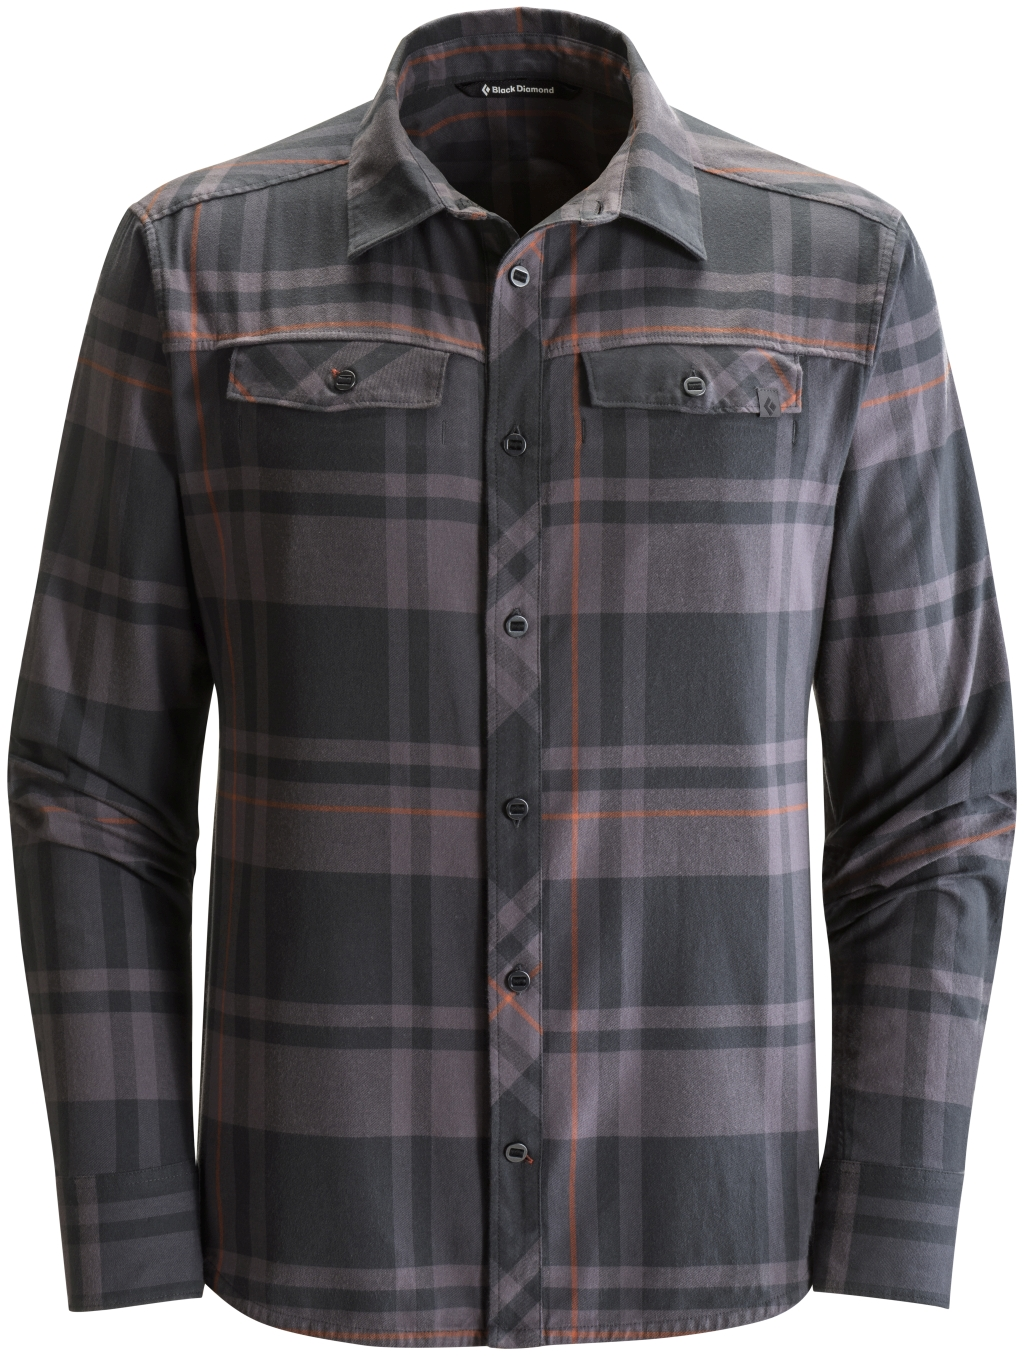 Black Diamond Long-Sleeve Stretch Technician Shirt Black Slate Plaid-30